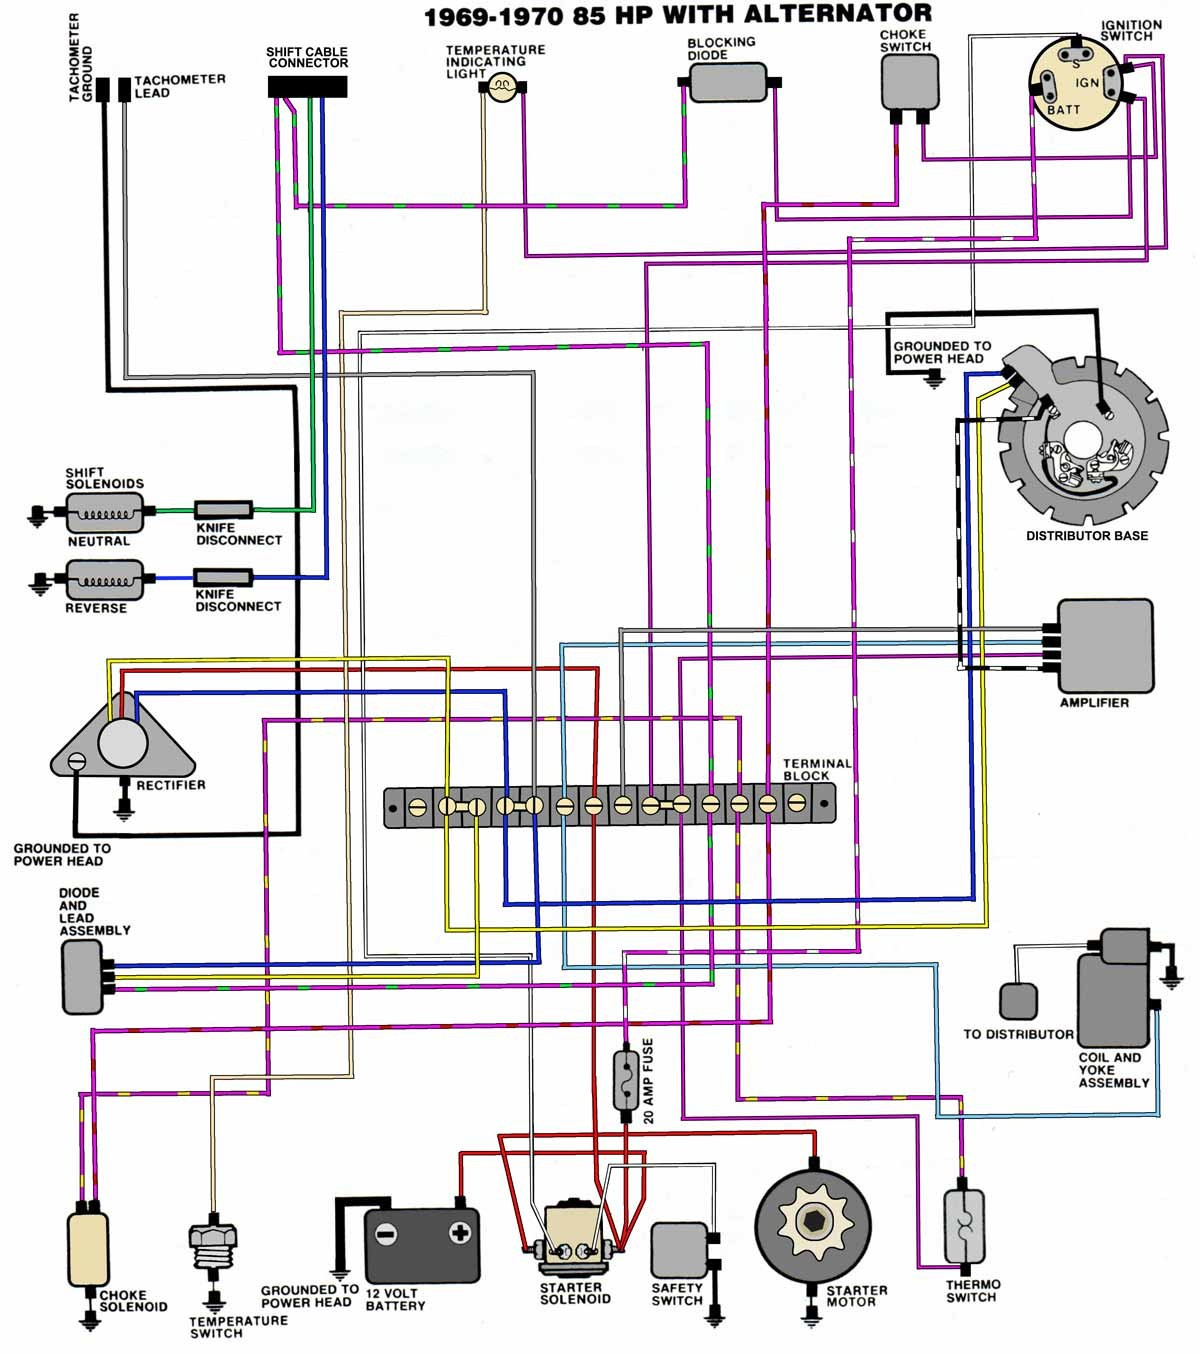 Mercury Outboard Wiring Diagram Schematic Elegant Image Mag Alternator Free Download 1977 Evinrude 85 Hp Diagrams Cool Ignition Switch